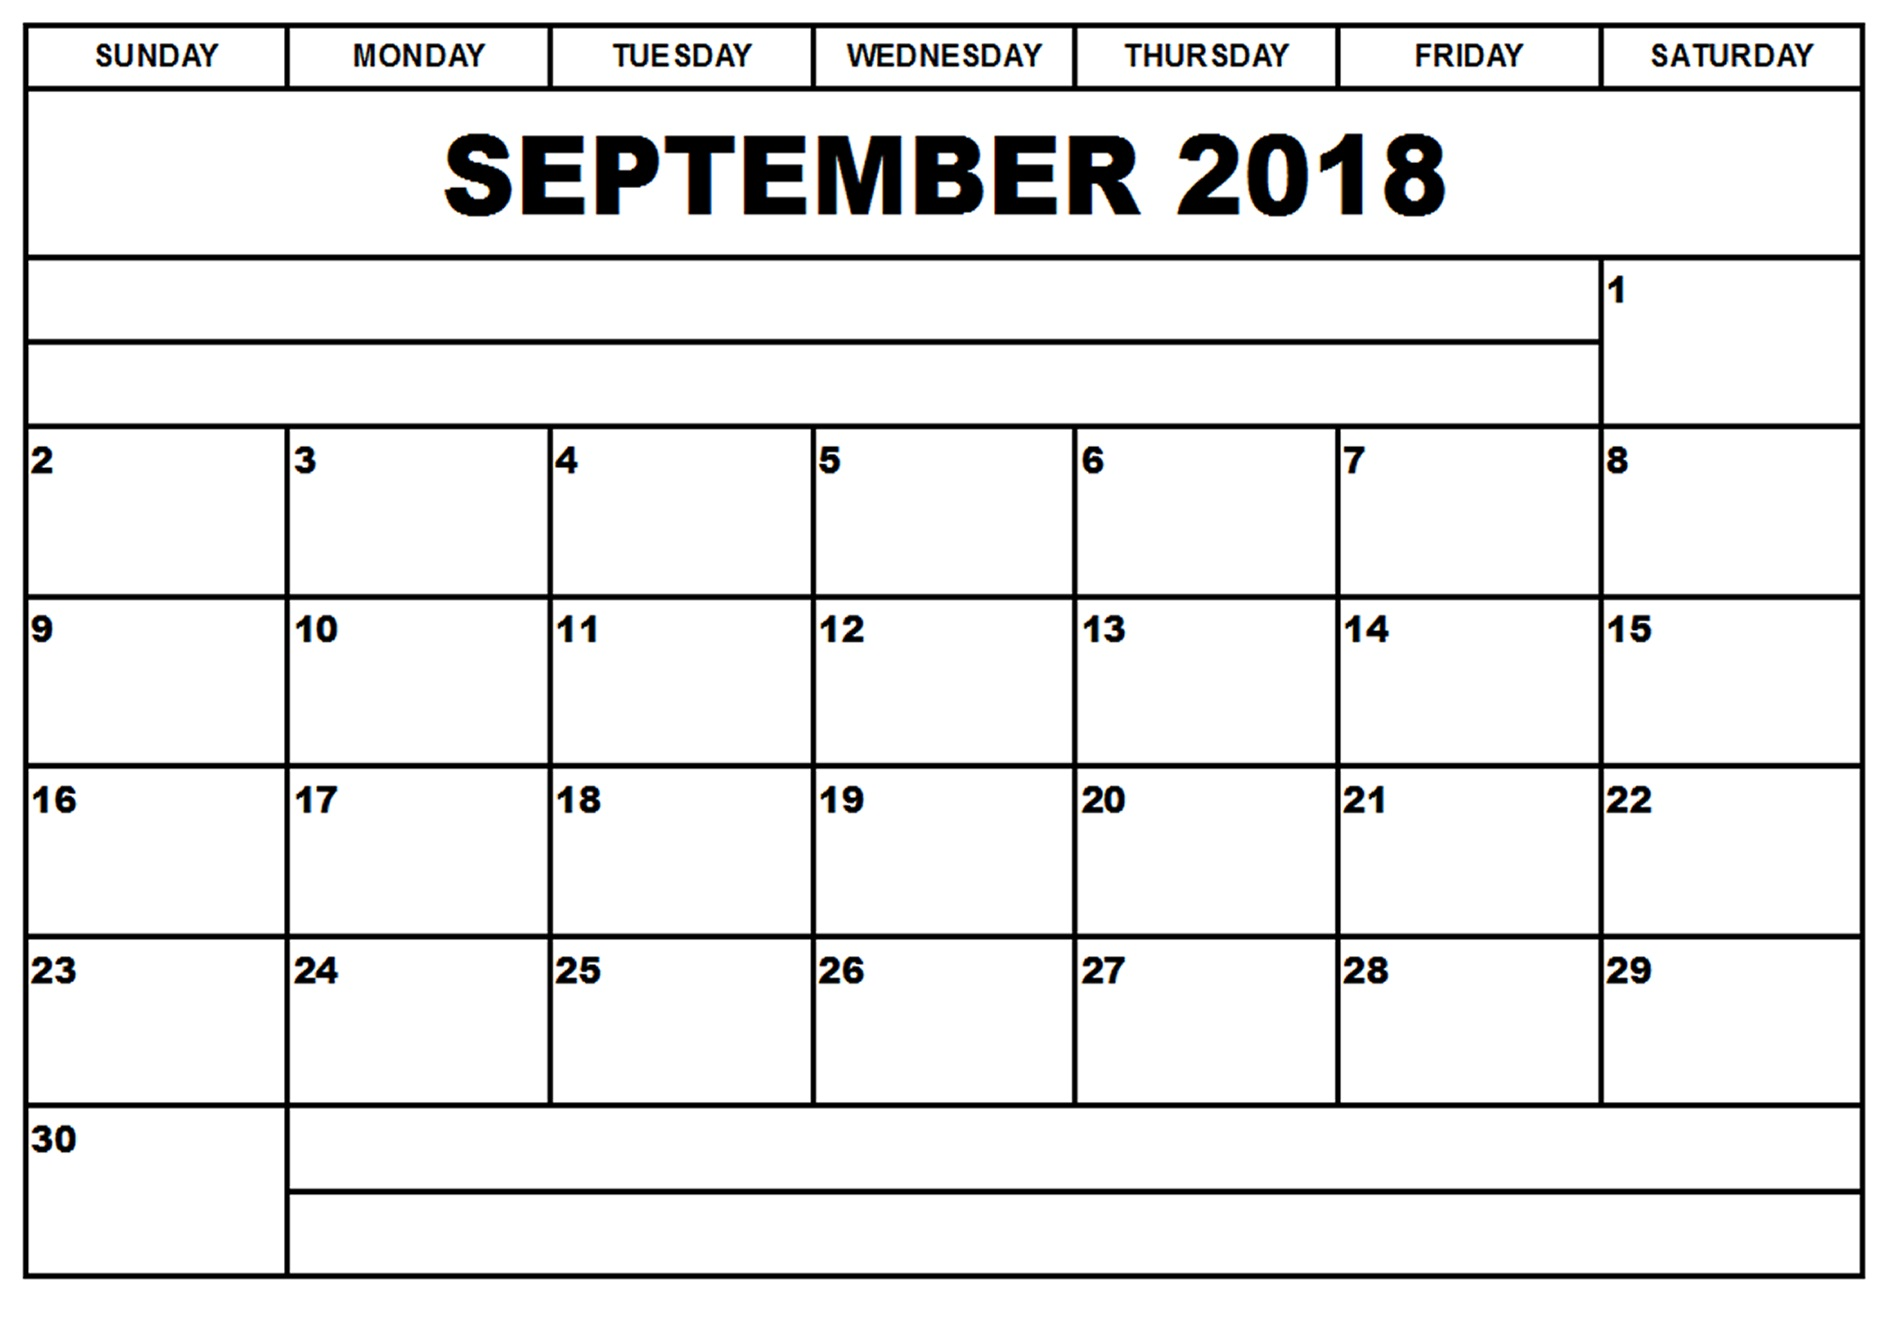 September Calendar 2018 Harper College